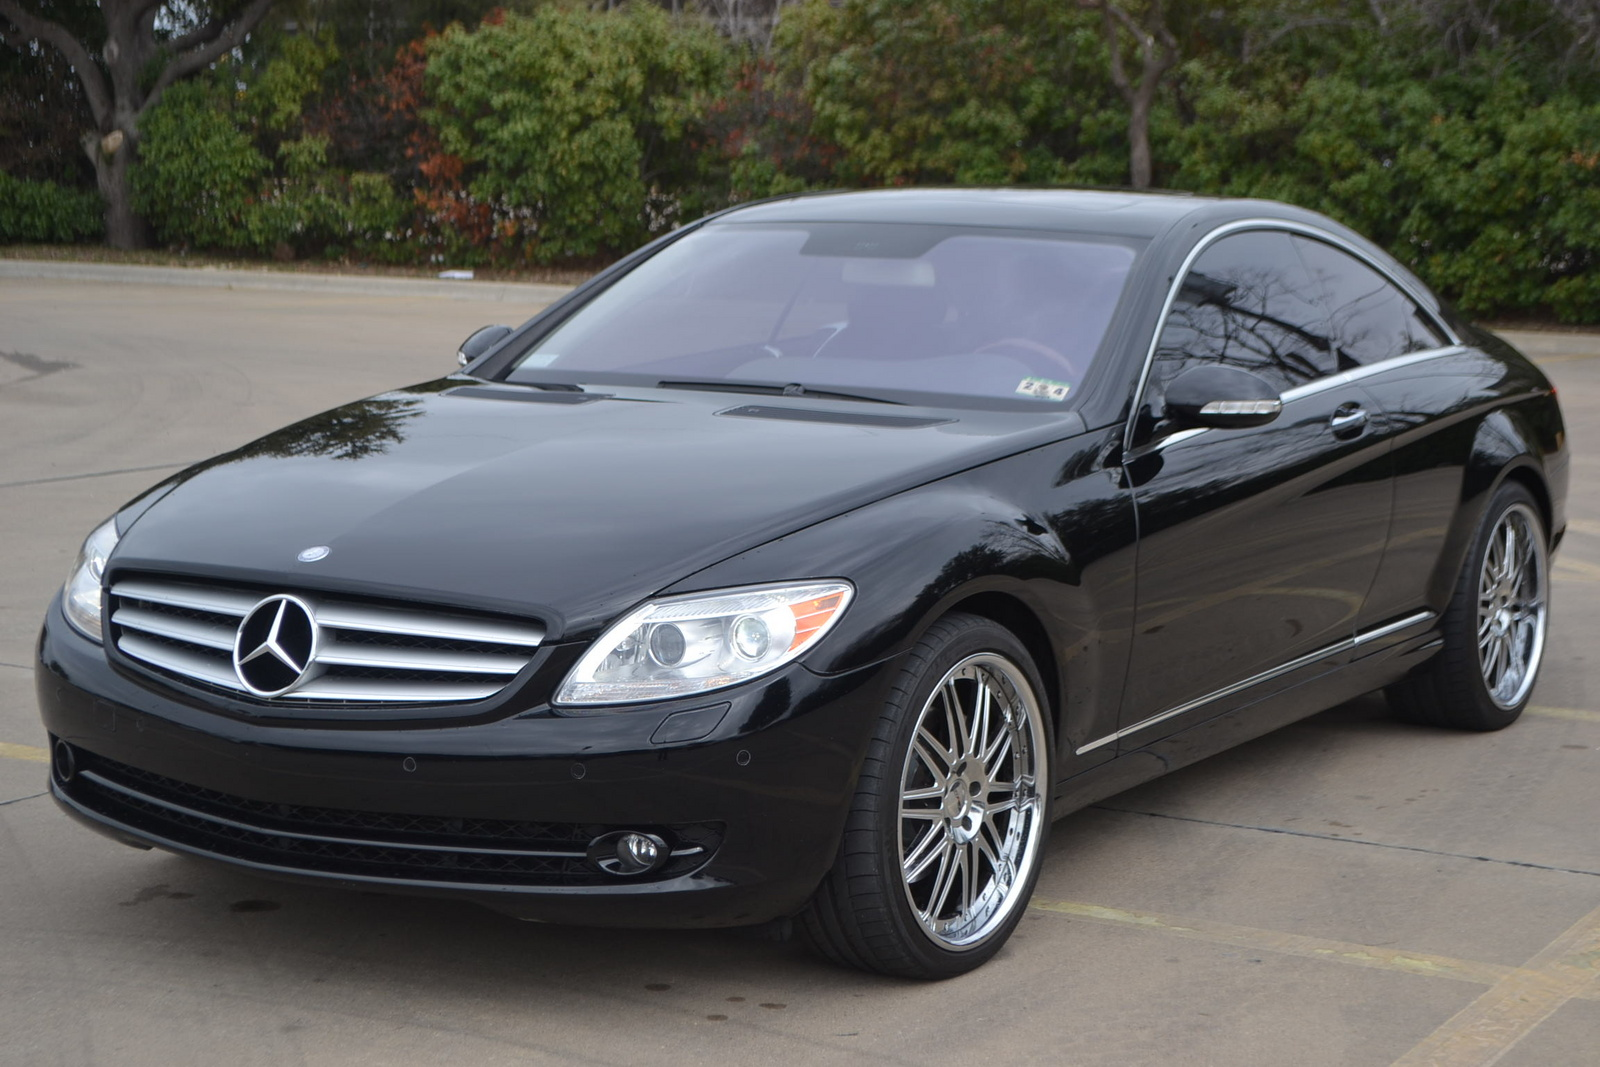 2007 mercedes benz cl class exterior pictures cargurus for 2007 mercedes benz cl550 for sale